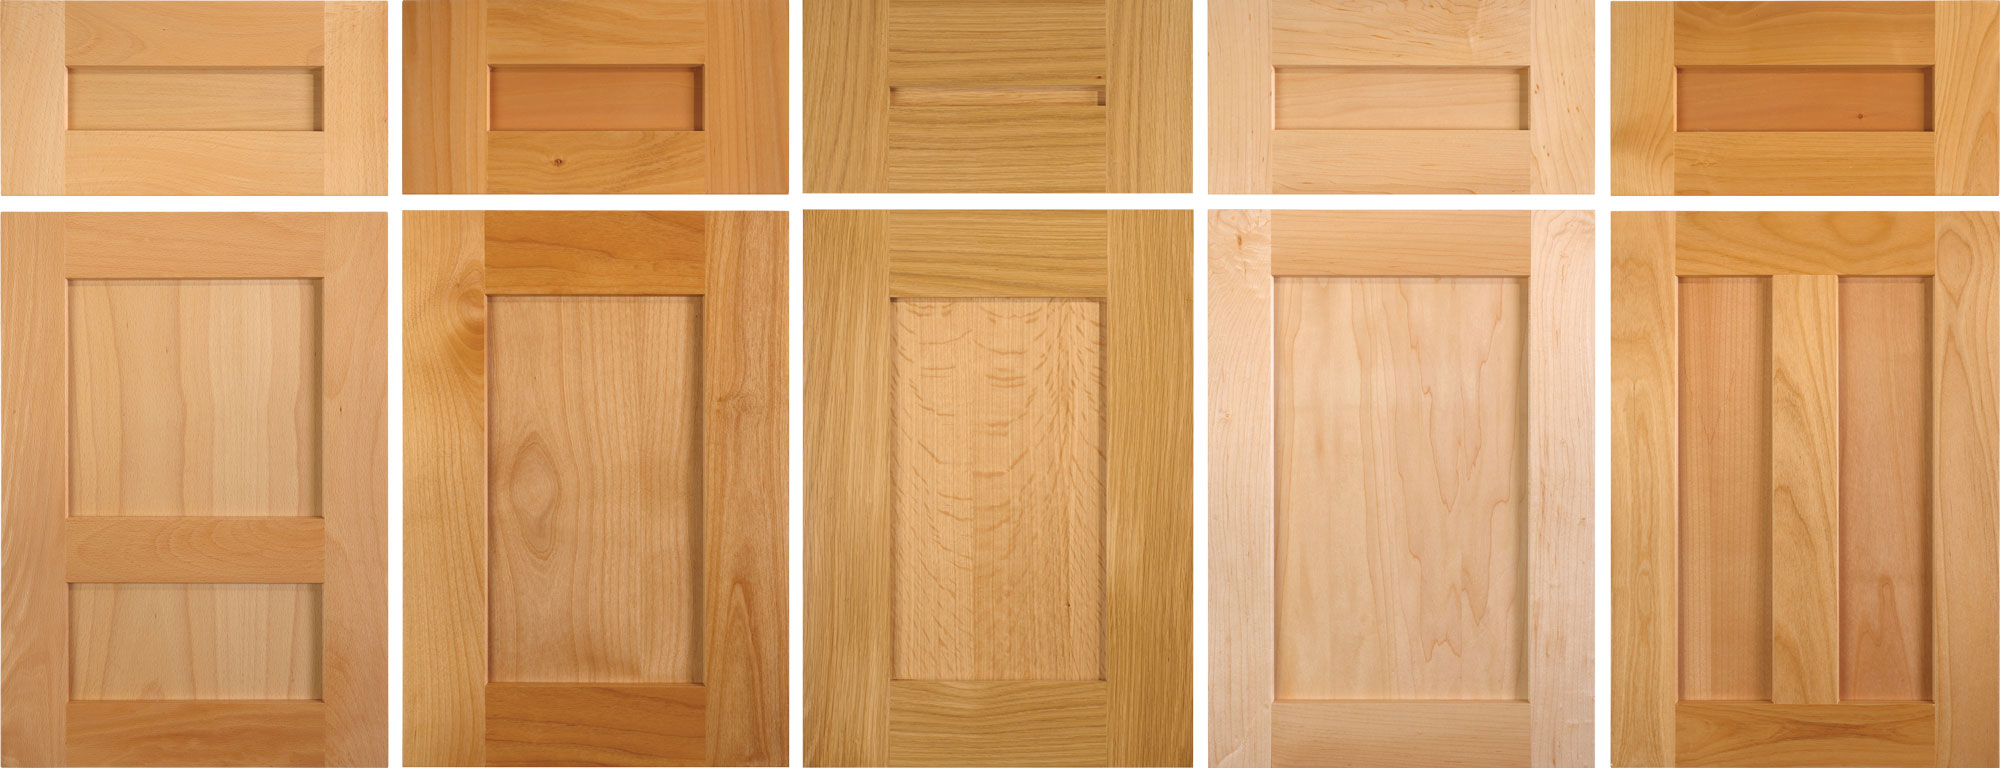 cabinet door plywood thickness | mf cabinets